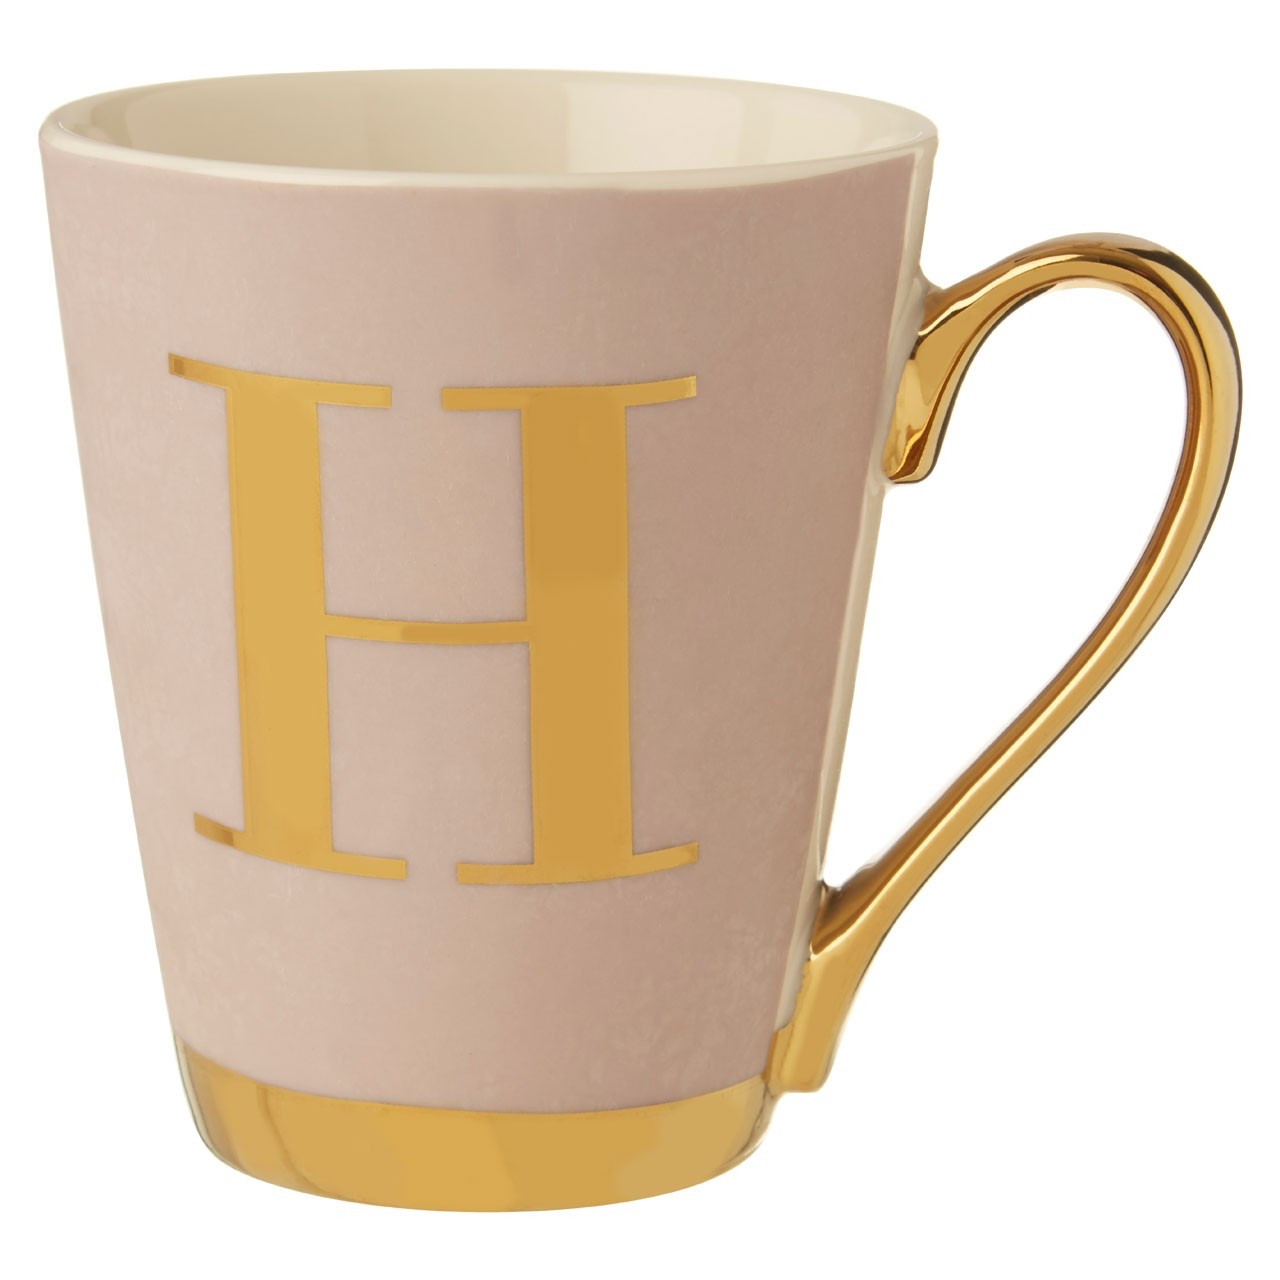 Mimo Grey Frosted Deco H Letter Monogram Mug